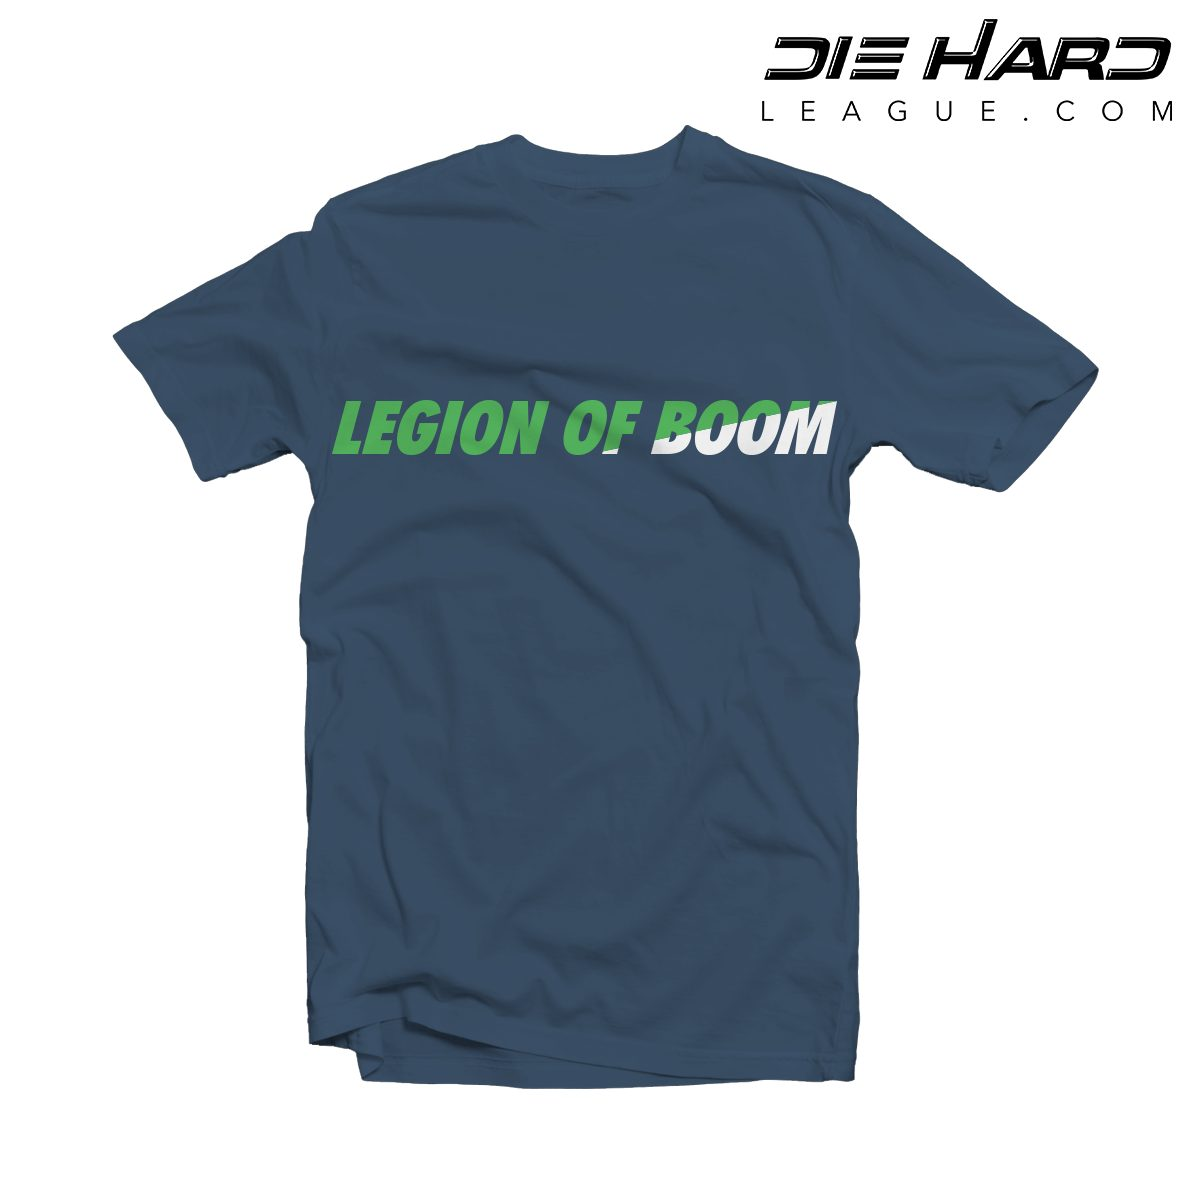 Seahawks Shirt - Legion of Boom Navy Tee   Best Design   cdef3b57b